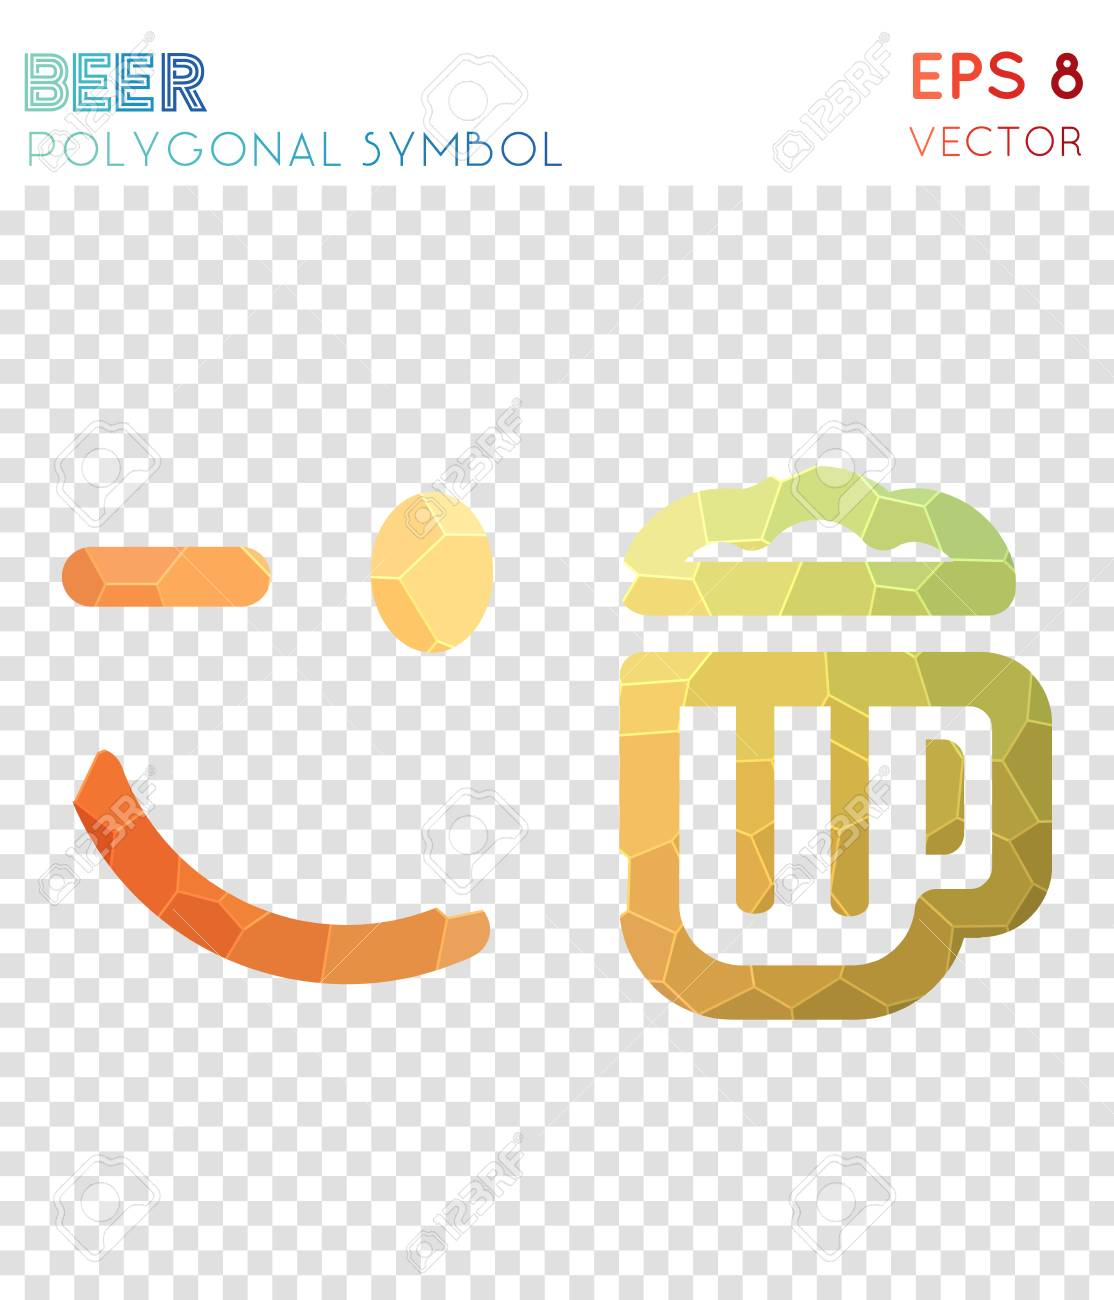 GroBartig Emo Beer Polygonal Symbol. Alluring Mosaic Style Symbol. Vibrant Low Poly  Style. Modern